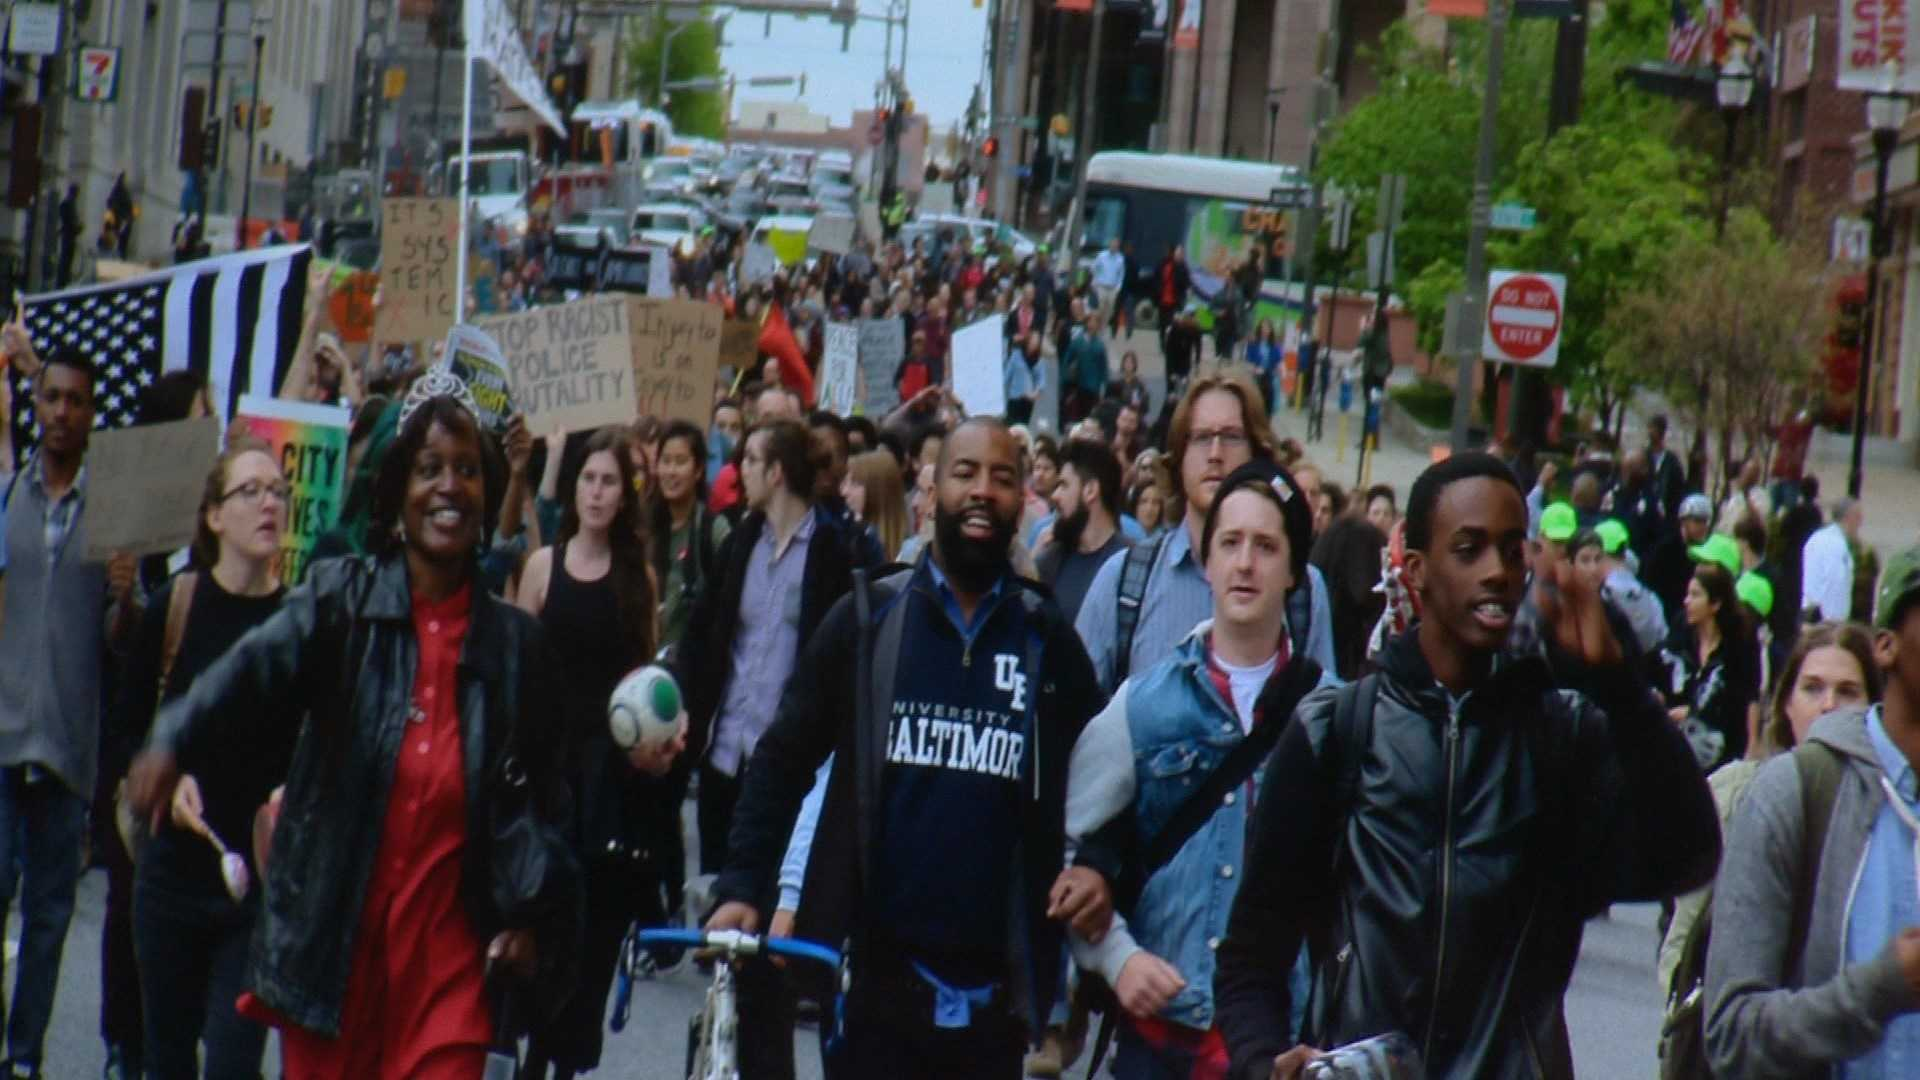 The Maryland Historical Society is developing a digital archive to preserve images, video and other media from the Baltimore unrest in 2015.